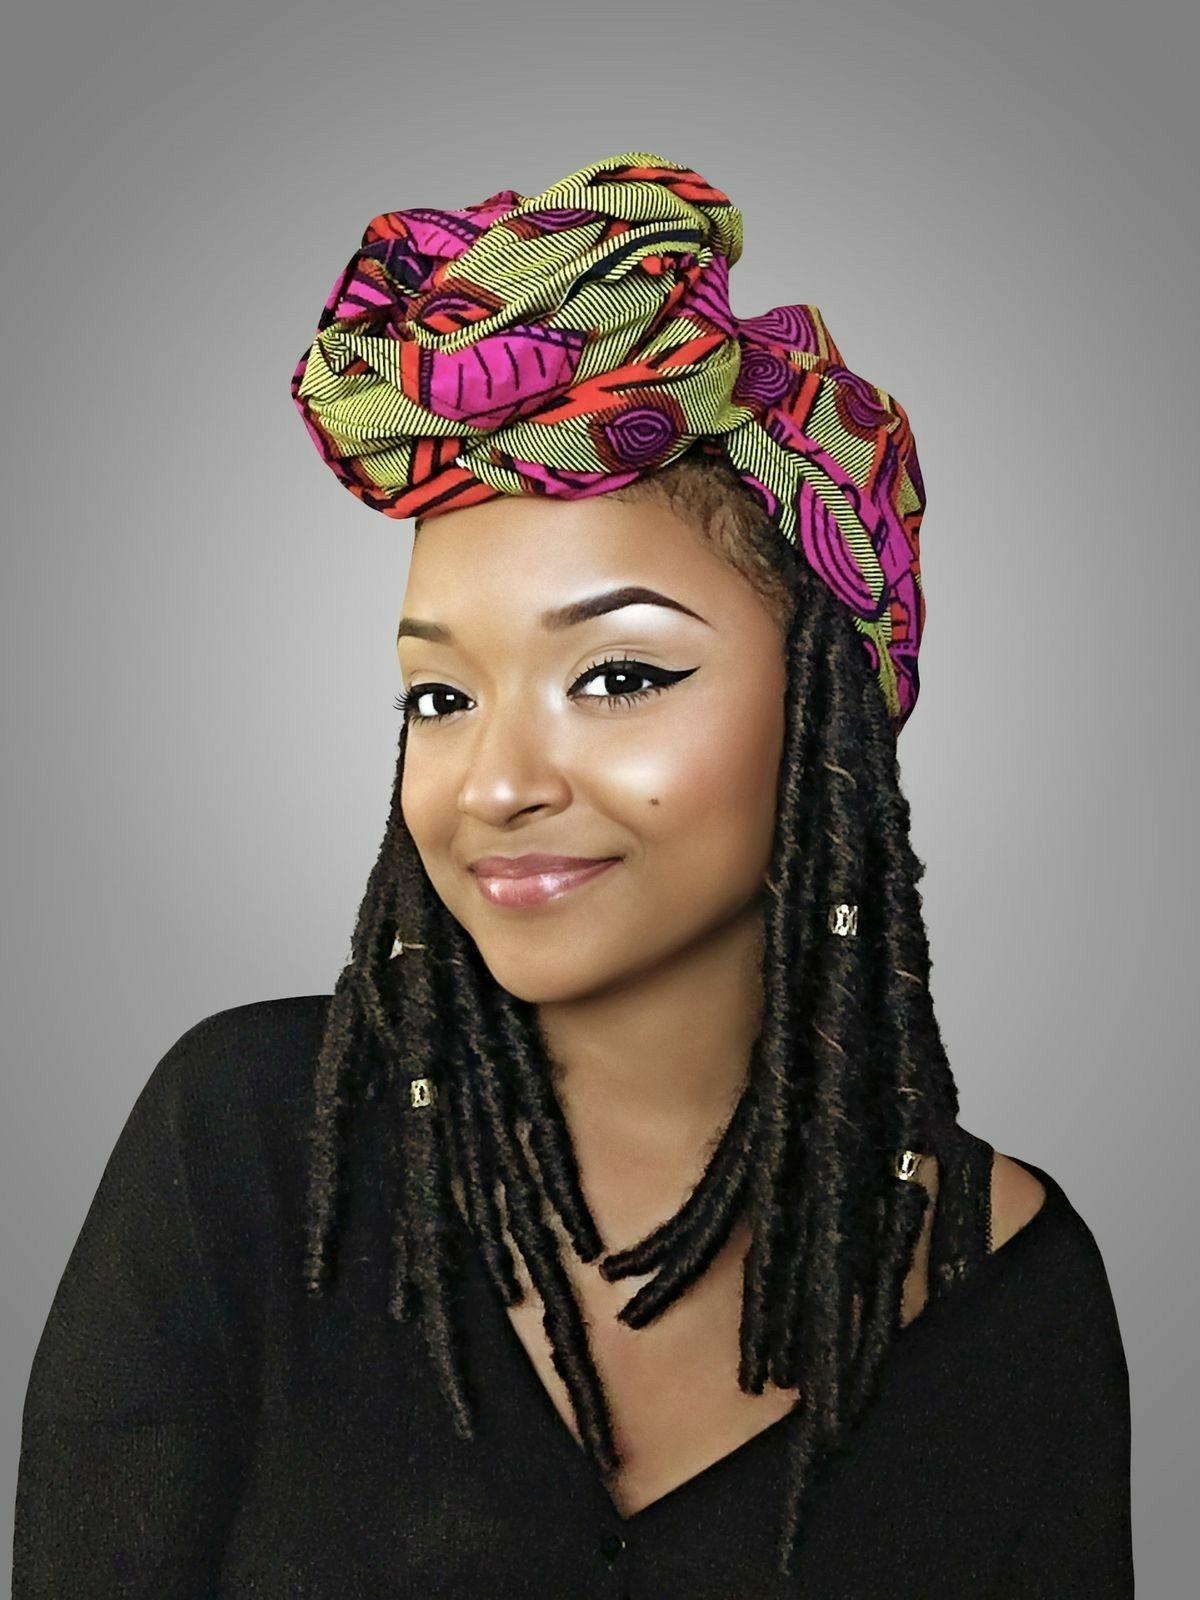 Pin by Caroline Frias on Hair   Head wrap styles, African ...